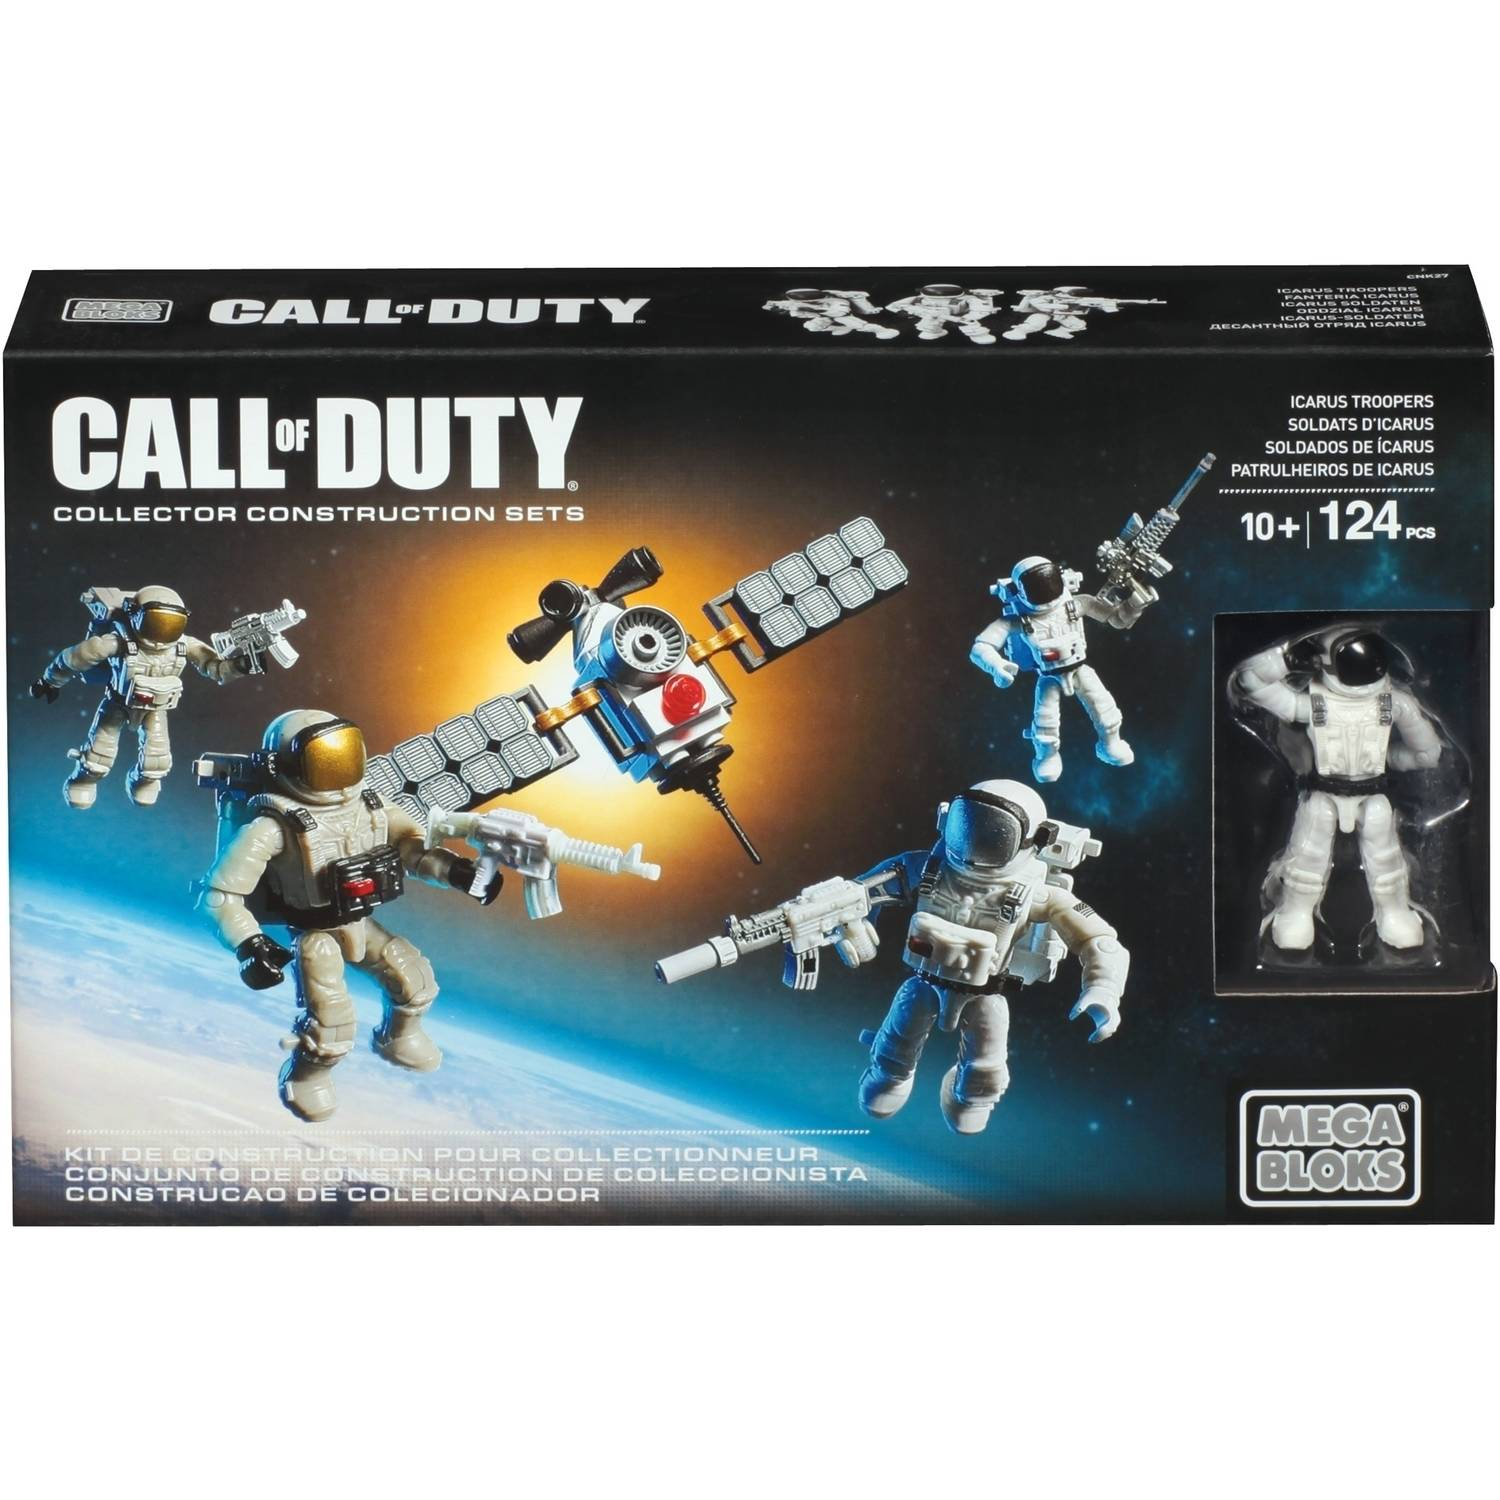 Mega Bloks Call of Duty Icarus Troopers